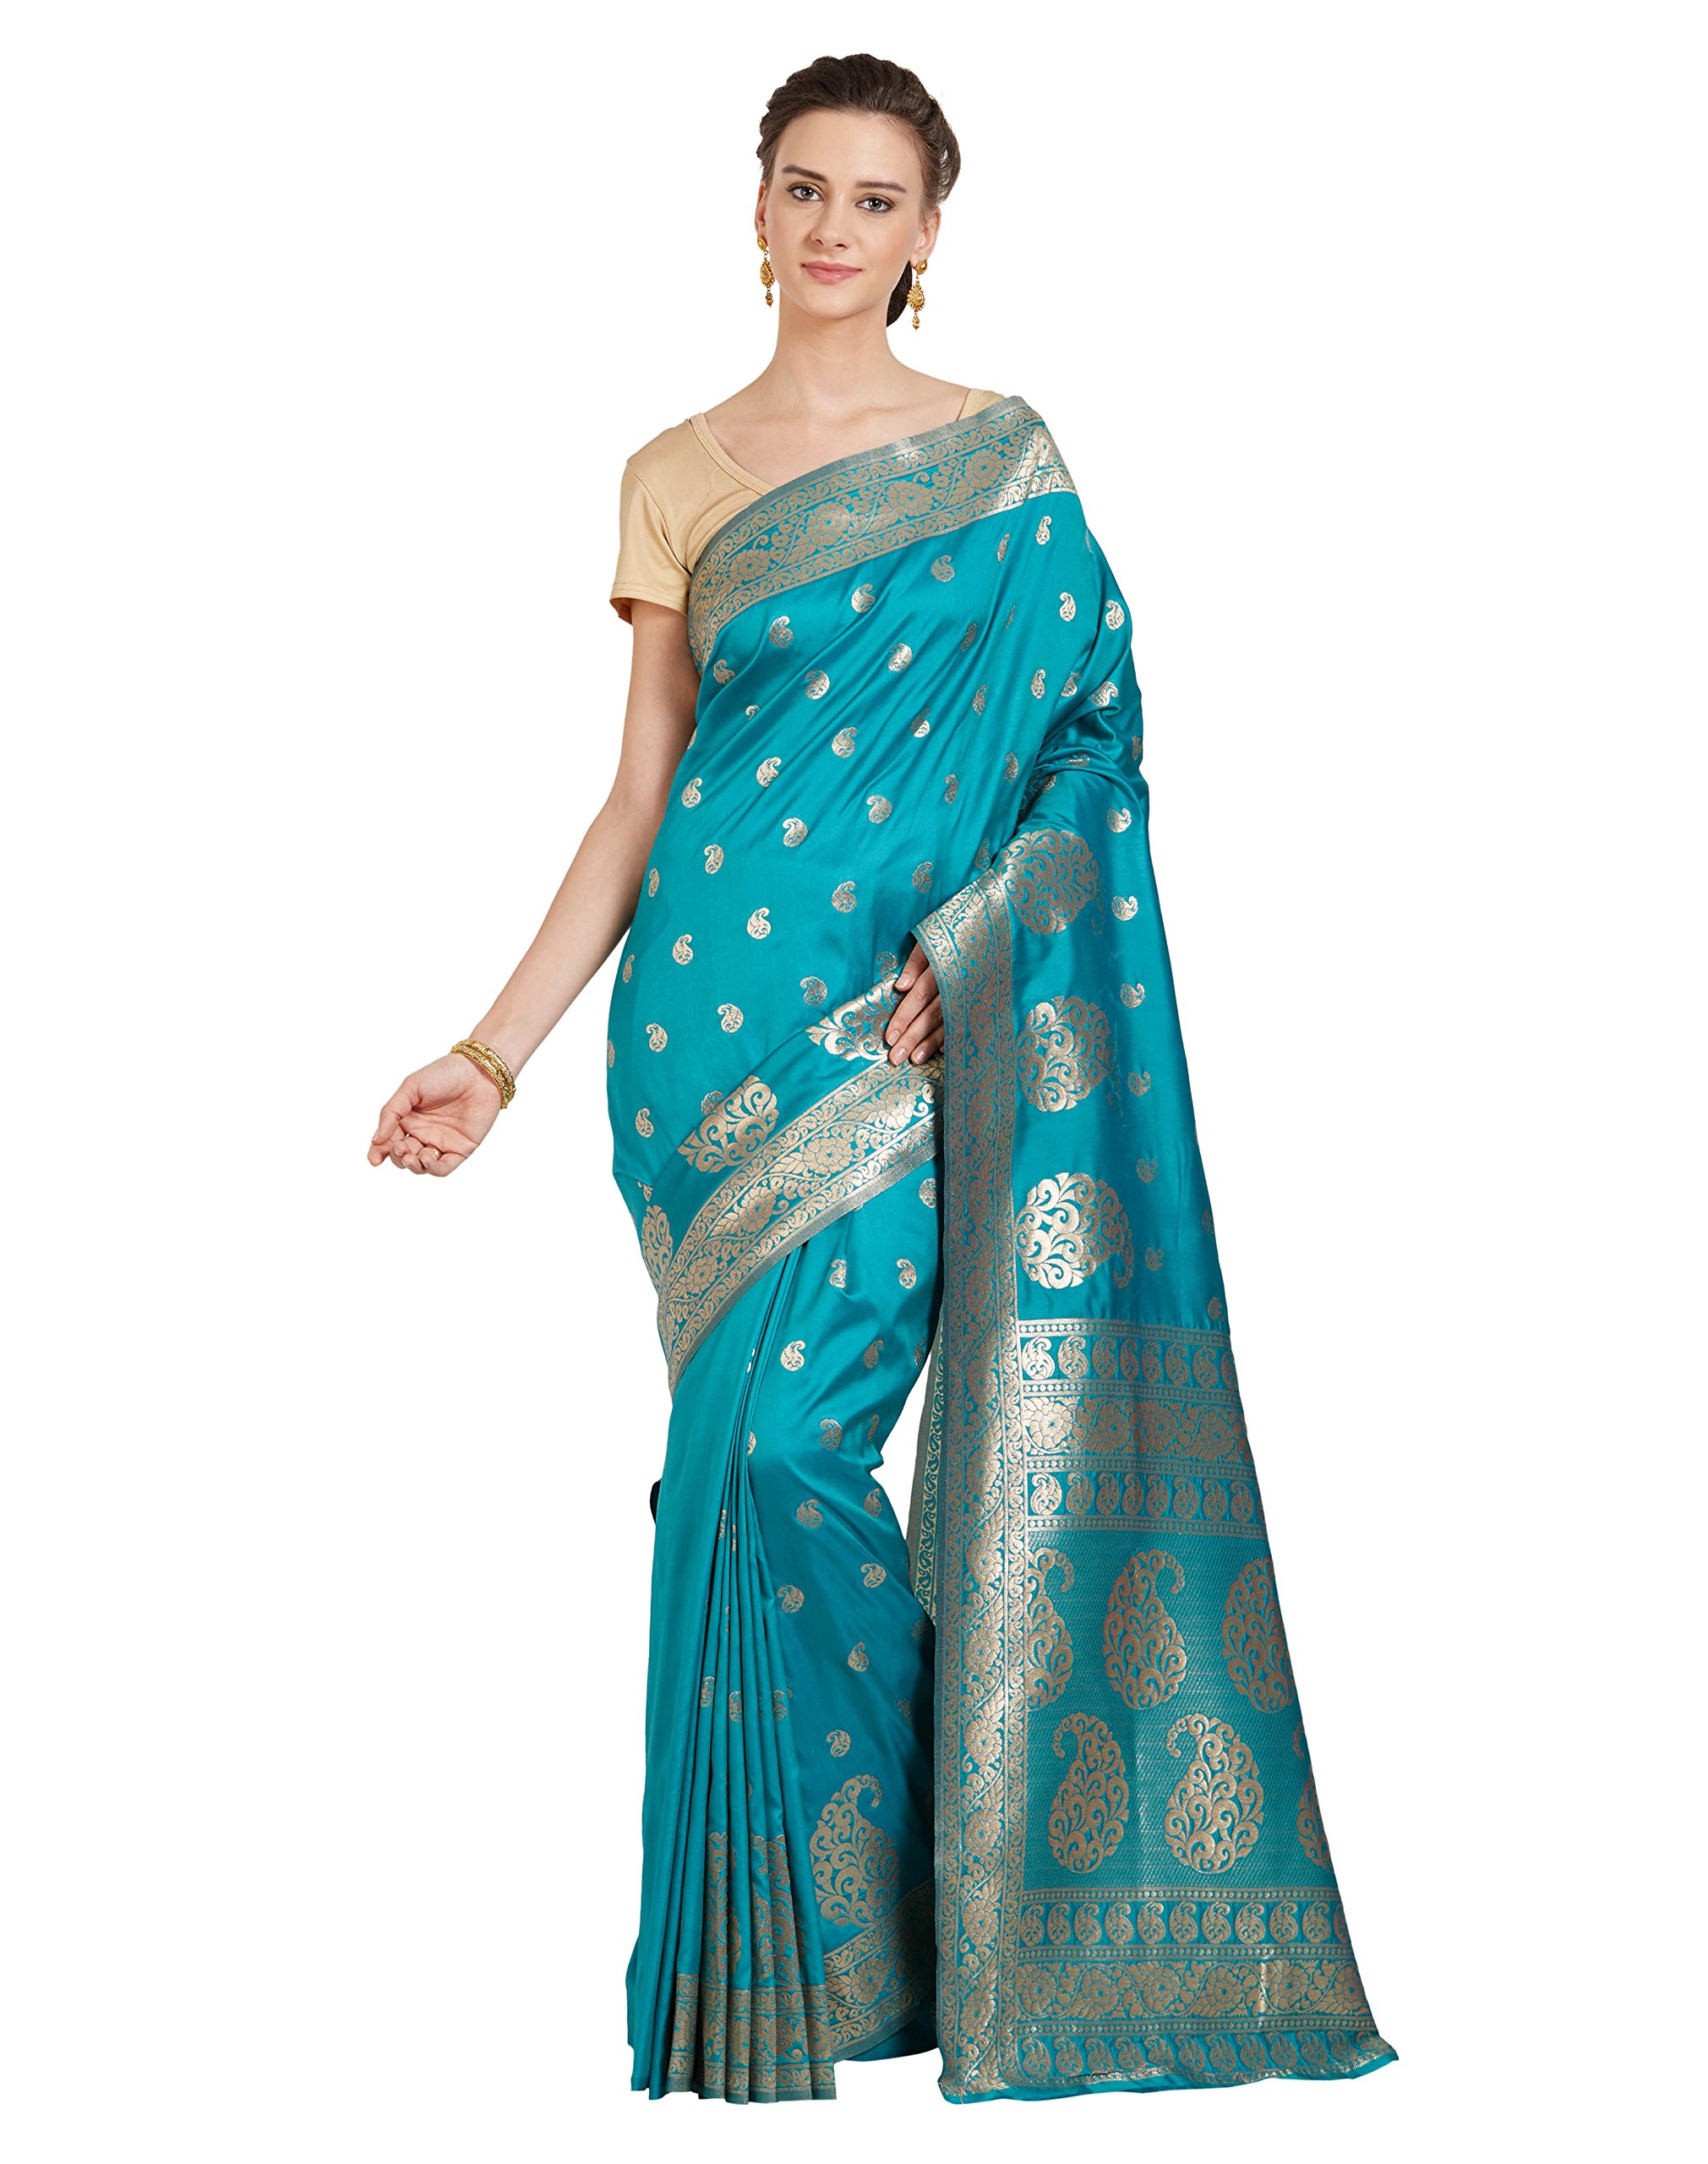 Viva N Diva Sarees for Women's Banarasi Sarees New Collection Teal Blue Colour Banarasi Art Silk Saree with Un-Stiched Blouse Piece,Free Size